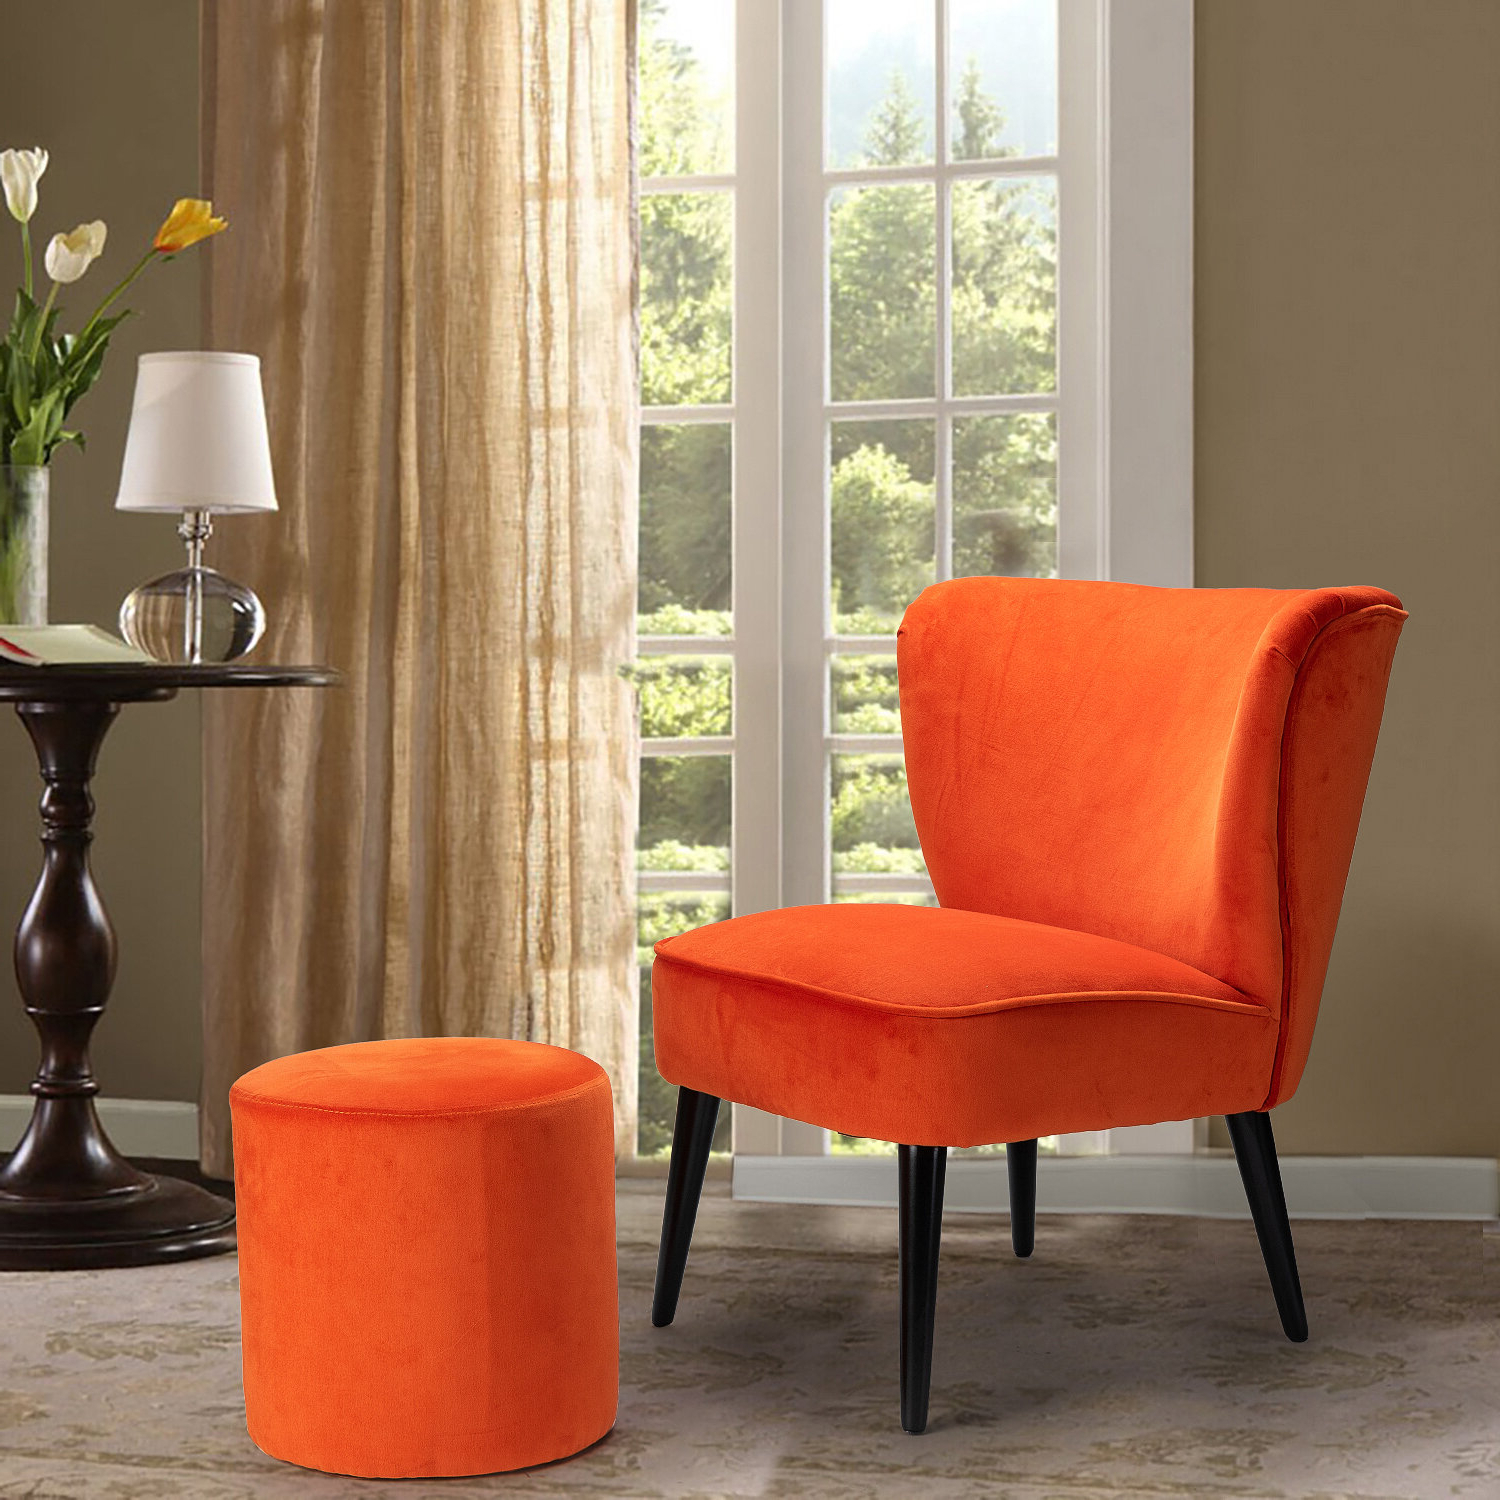 Most Popular Brookneal Slipper Chair And Ottoman For Goodyear Slipper Chairs (View 18 of 20)